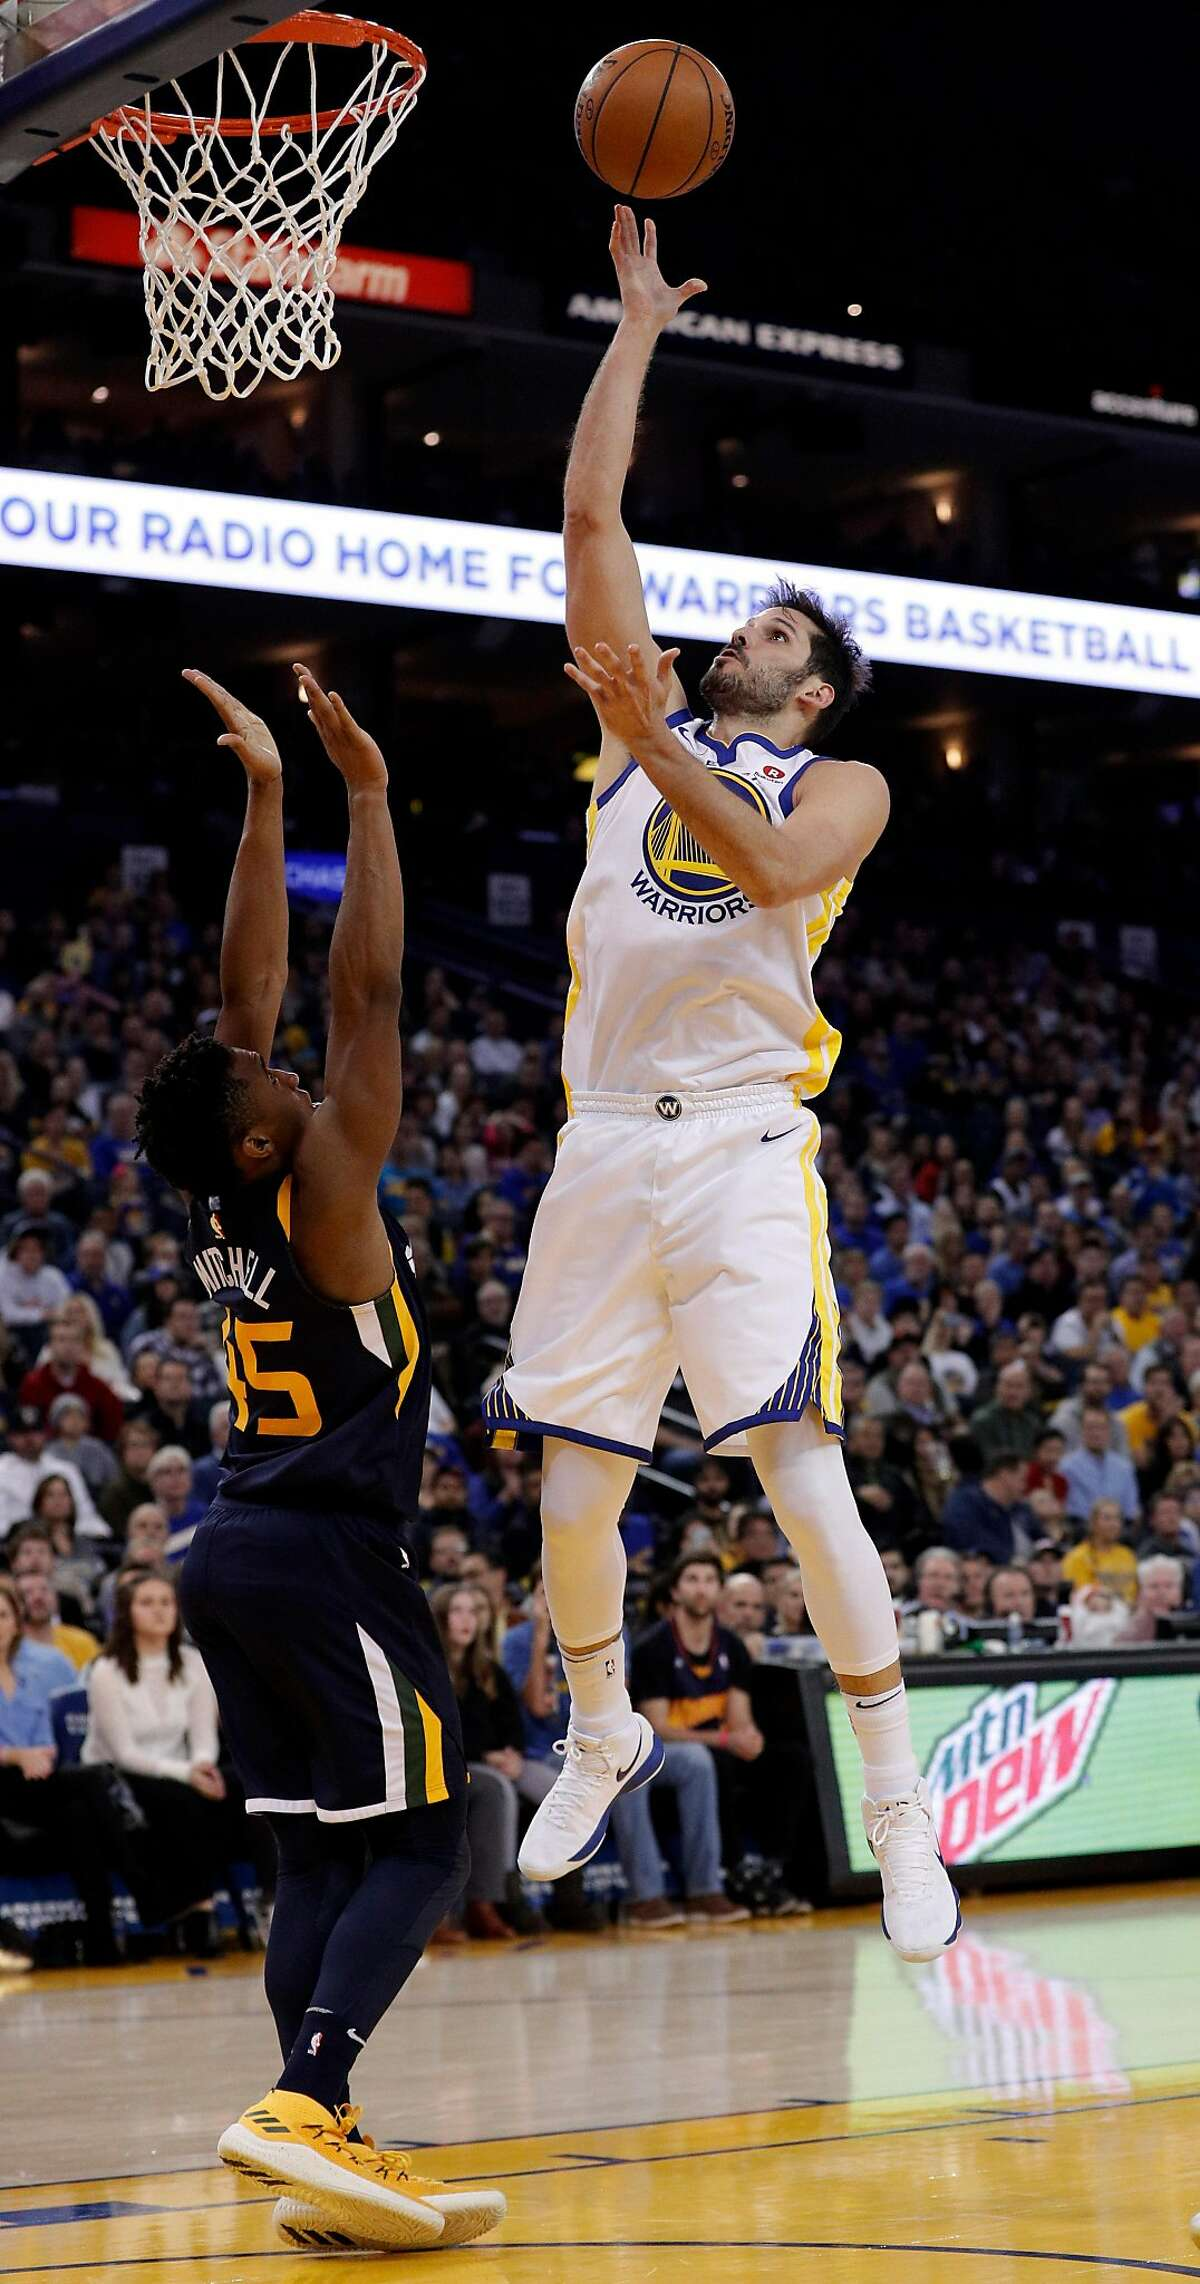 Omri Casspi (18) shoots over Donovan Mitchell (45) in the second half as the Golden State Warriors played the Utah Jazz at Oracle Arena in Oakland on Wednesday, Dec. 27, 2017.